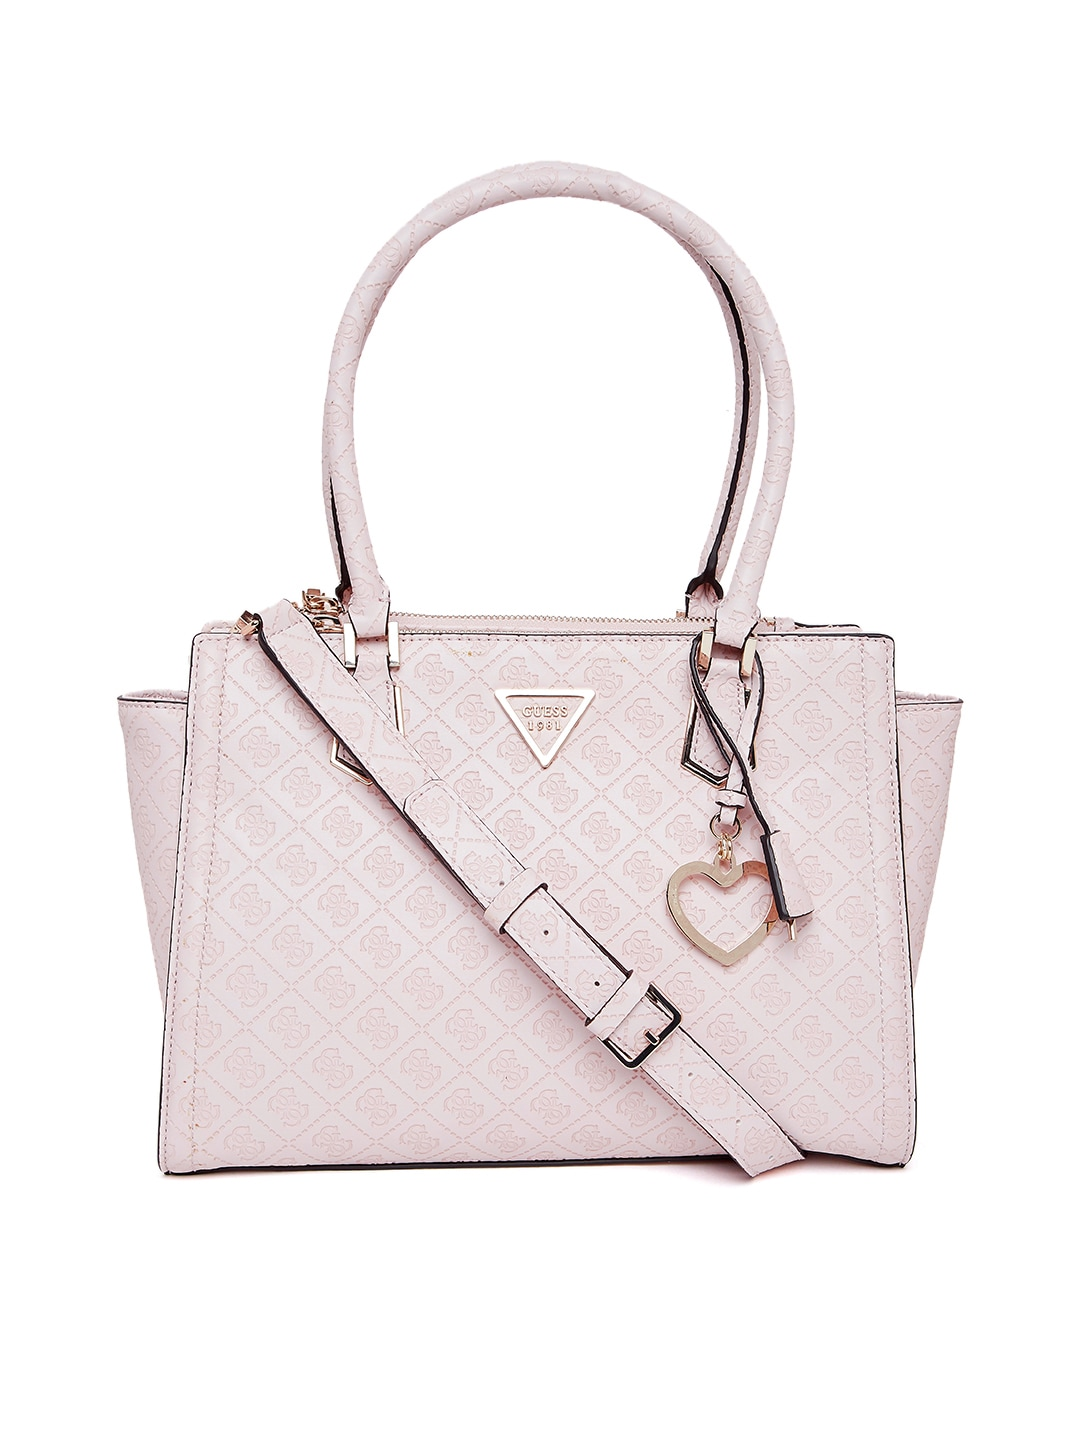 22a83c0b8c Guess Handbags - Buy Guess Handbags online in India